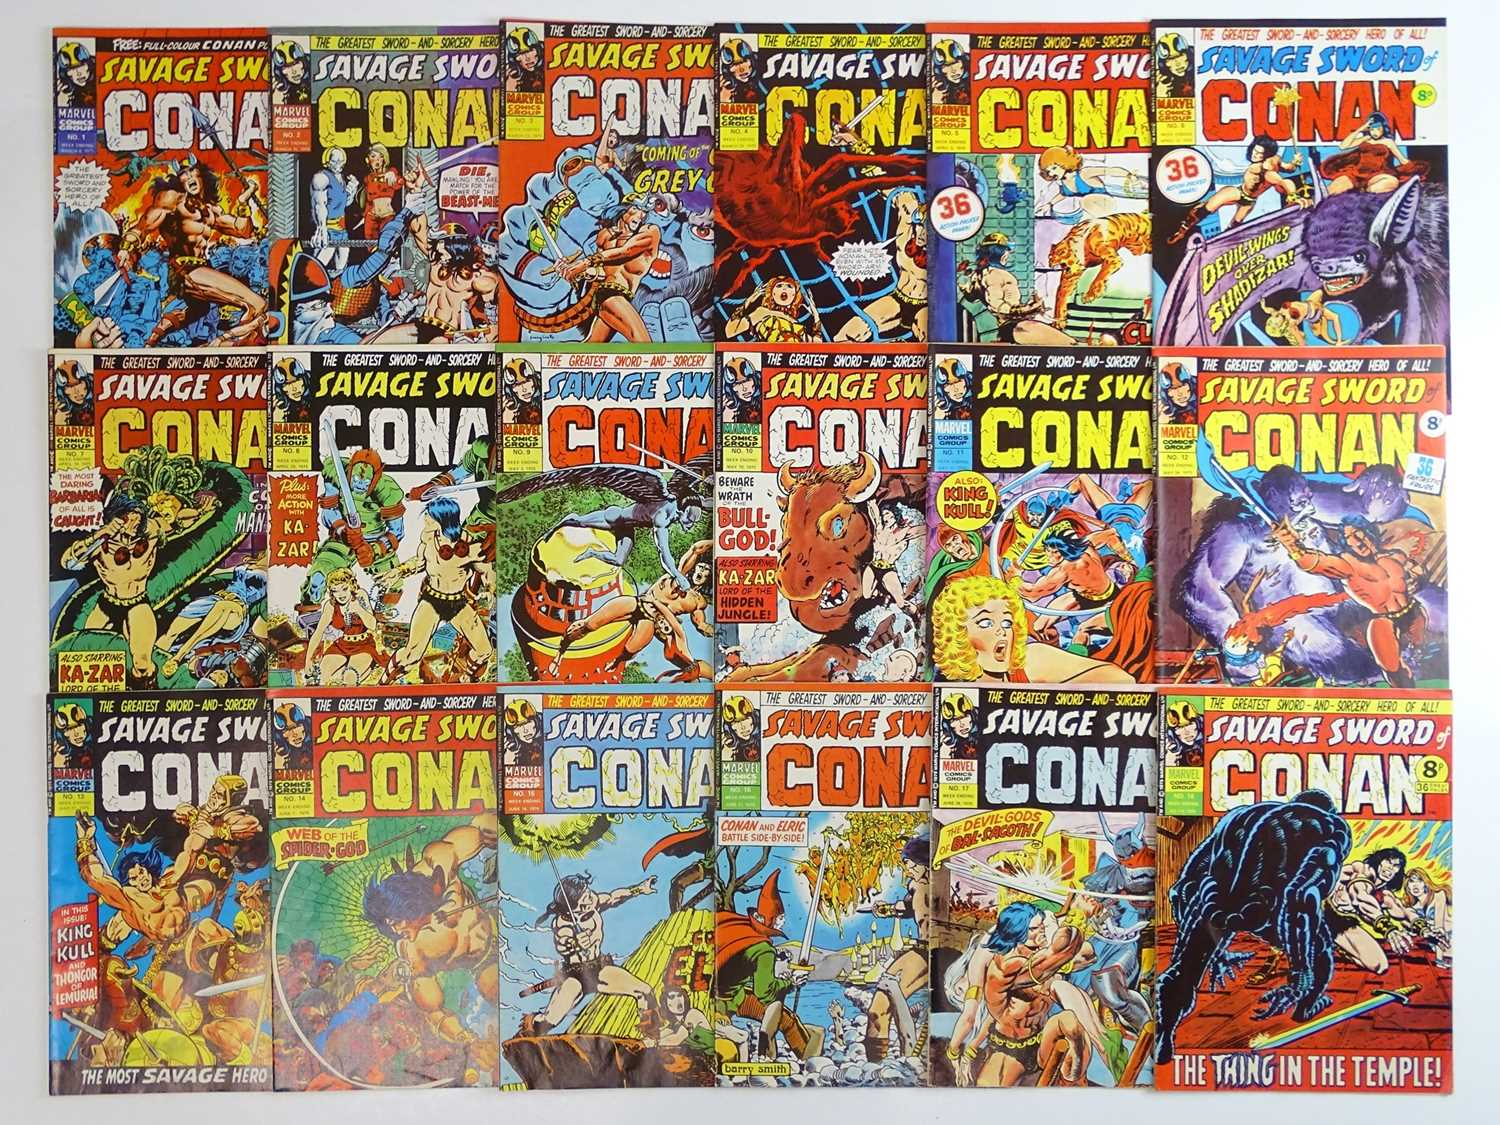 SAVAGE SWORD OF CONAN #1 to 18 - (18 in Lot) - (1975 - BRITISH MARVEL) - Complete 18 issue run